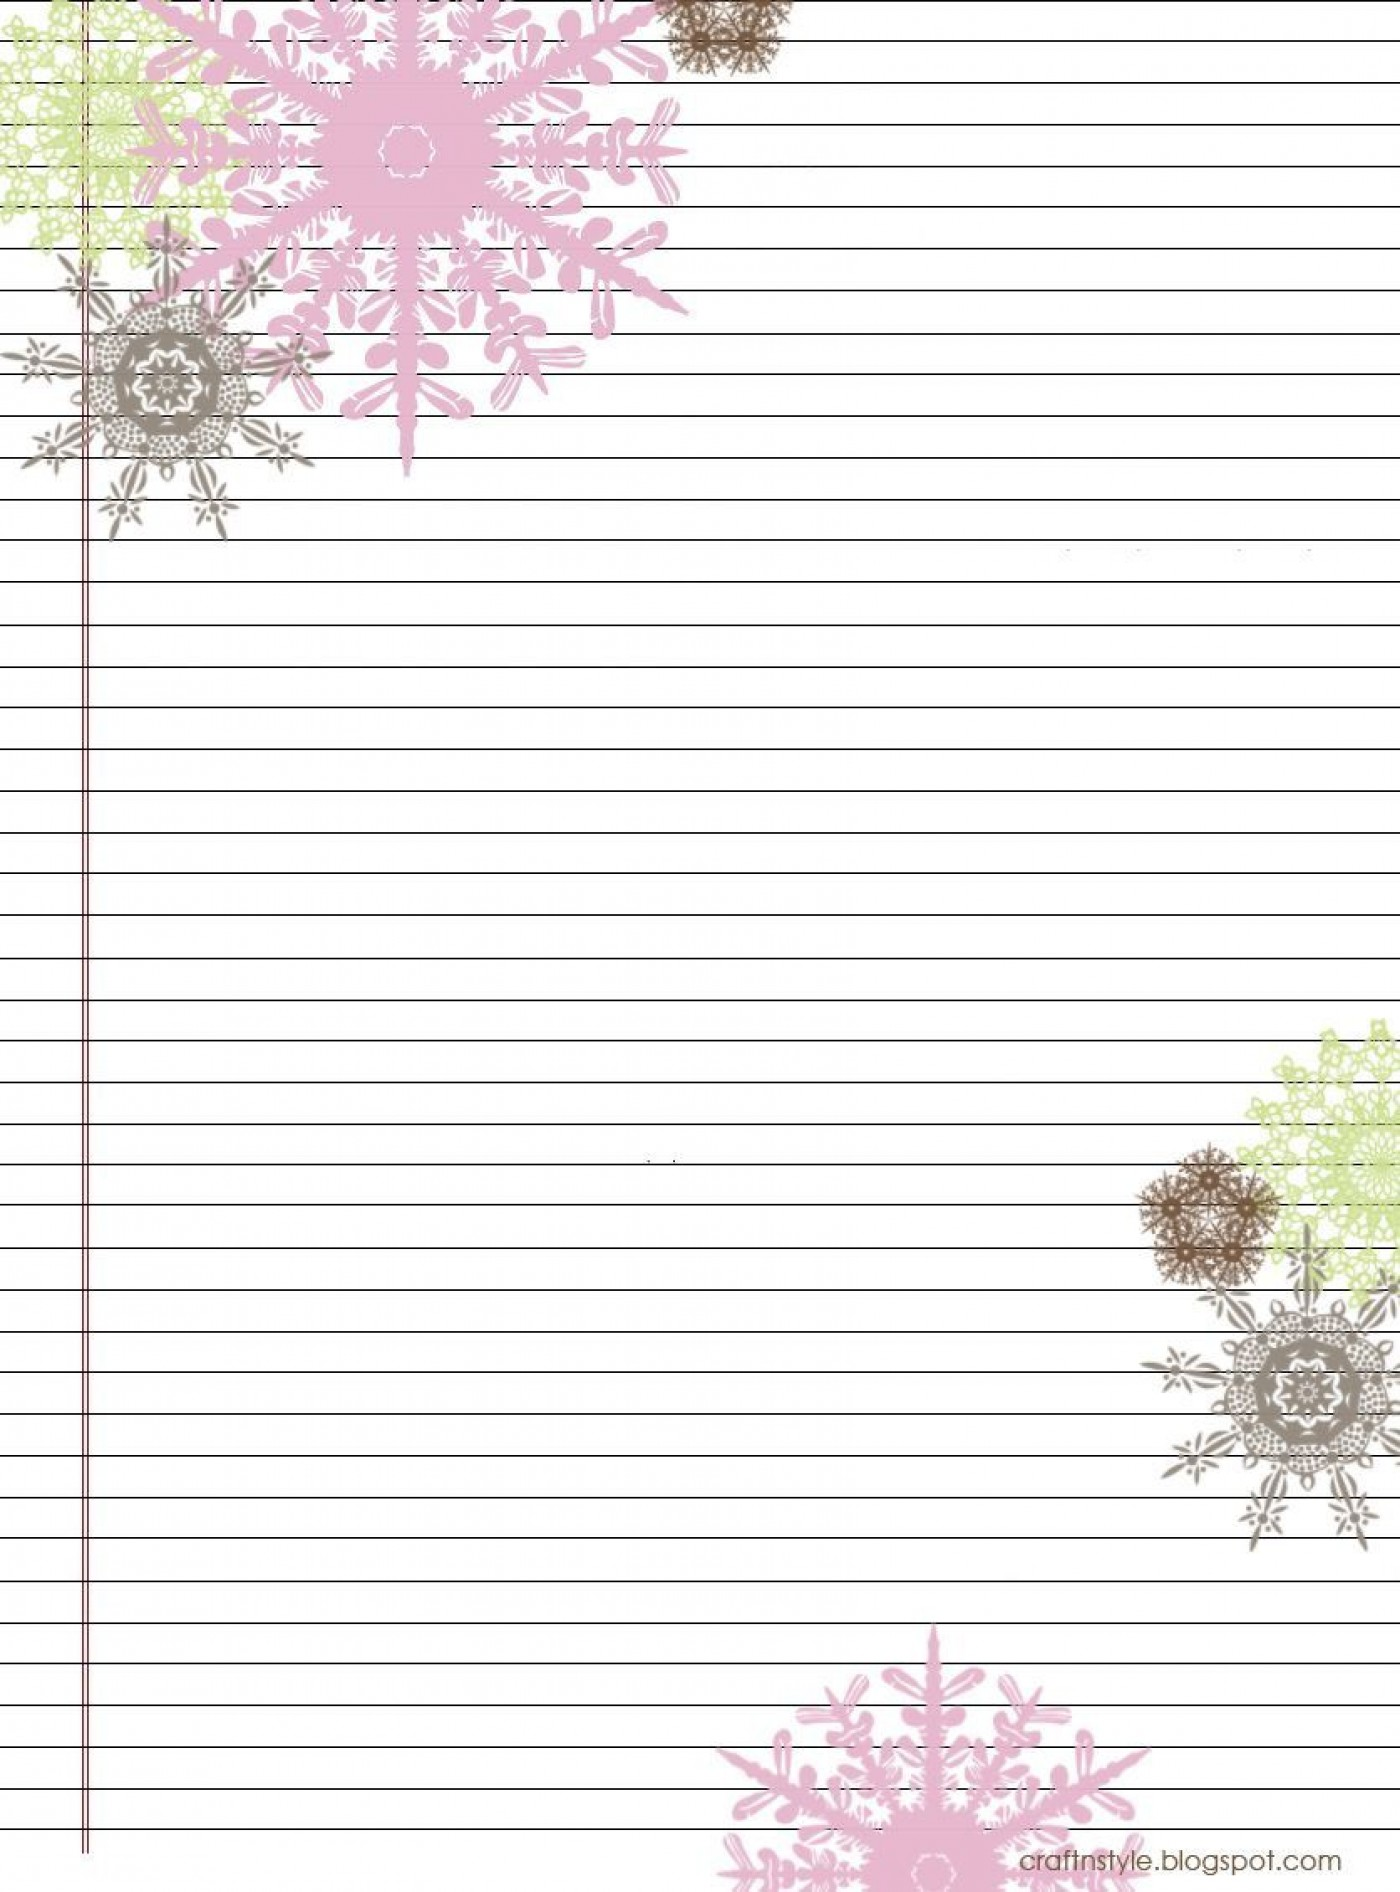 004 Stirring Free Printable Stationery Paper Template Inspiration 1400